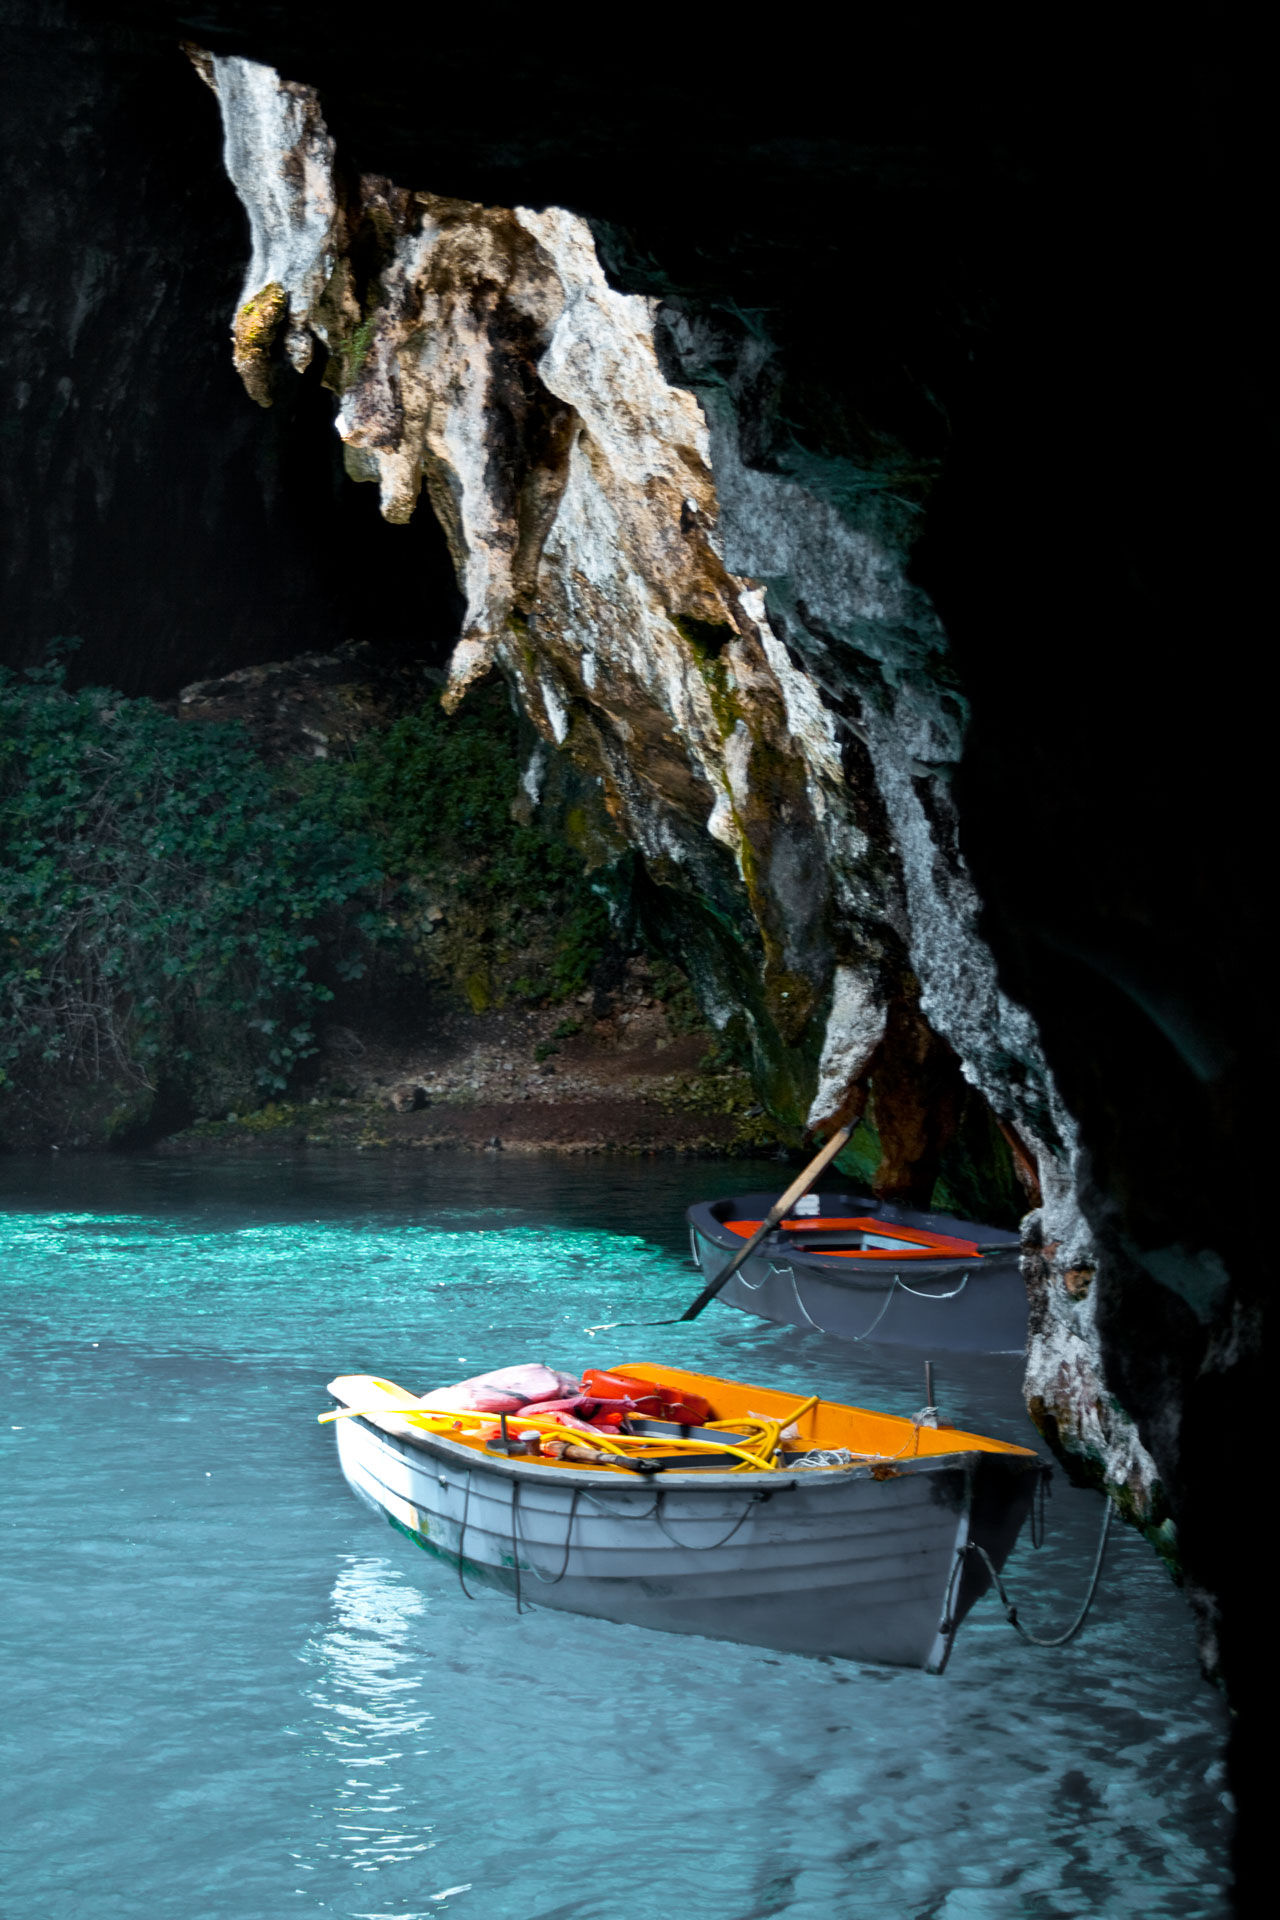 Visiting the Melissani Cave has rightly become a must-see for visitors to Kefalonia